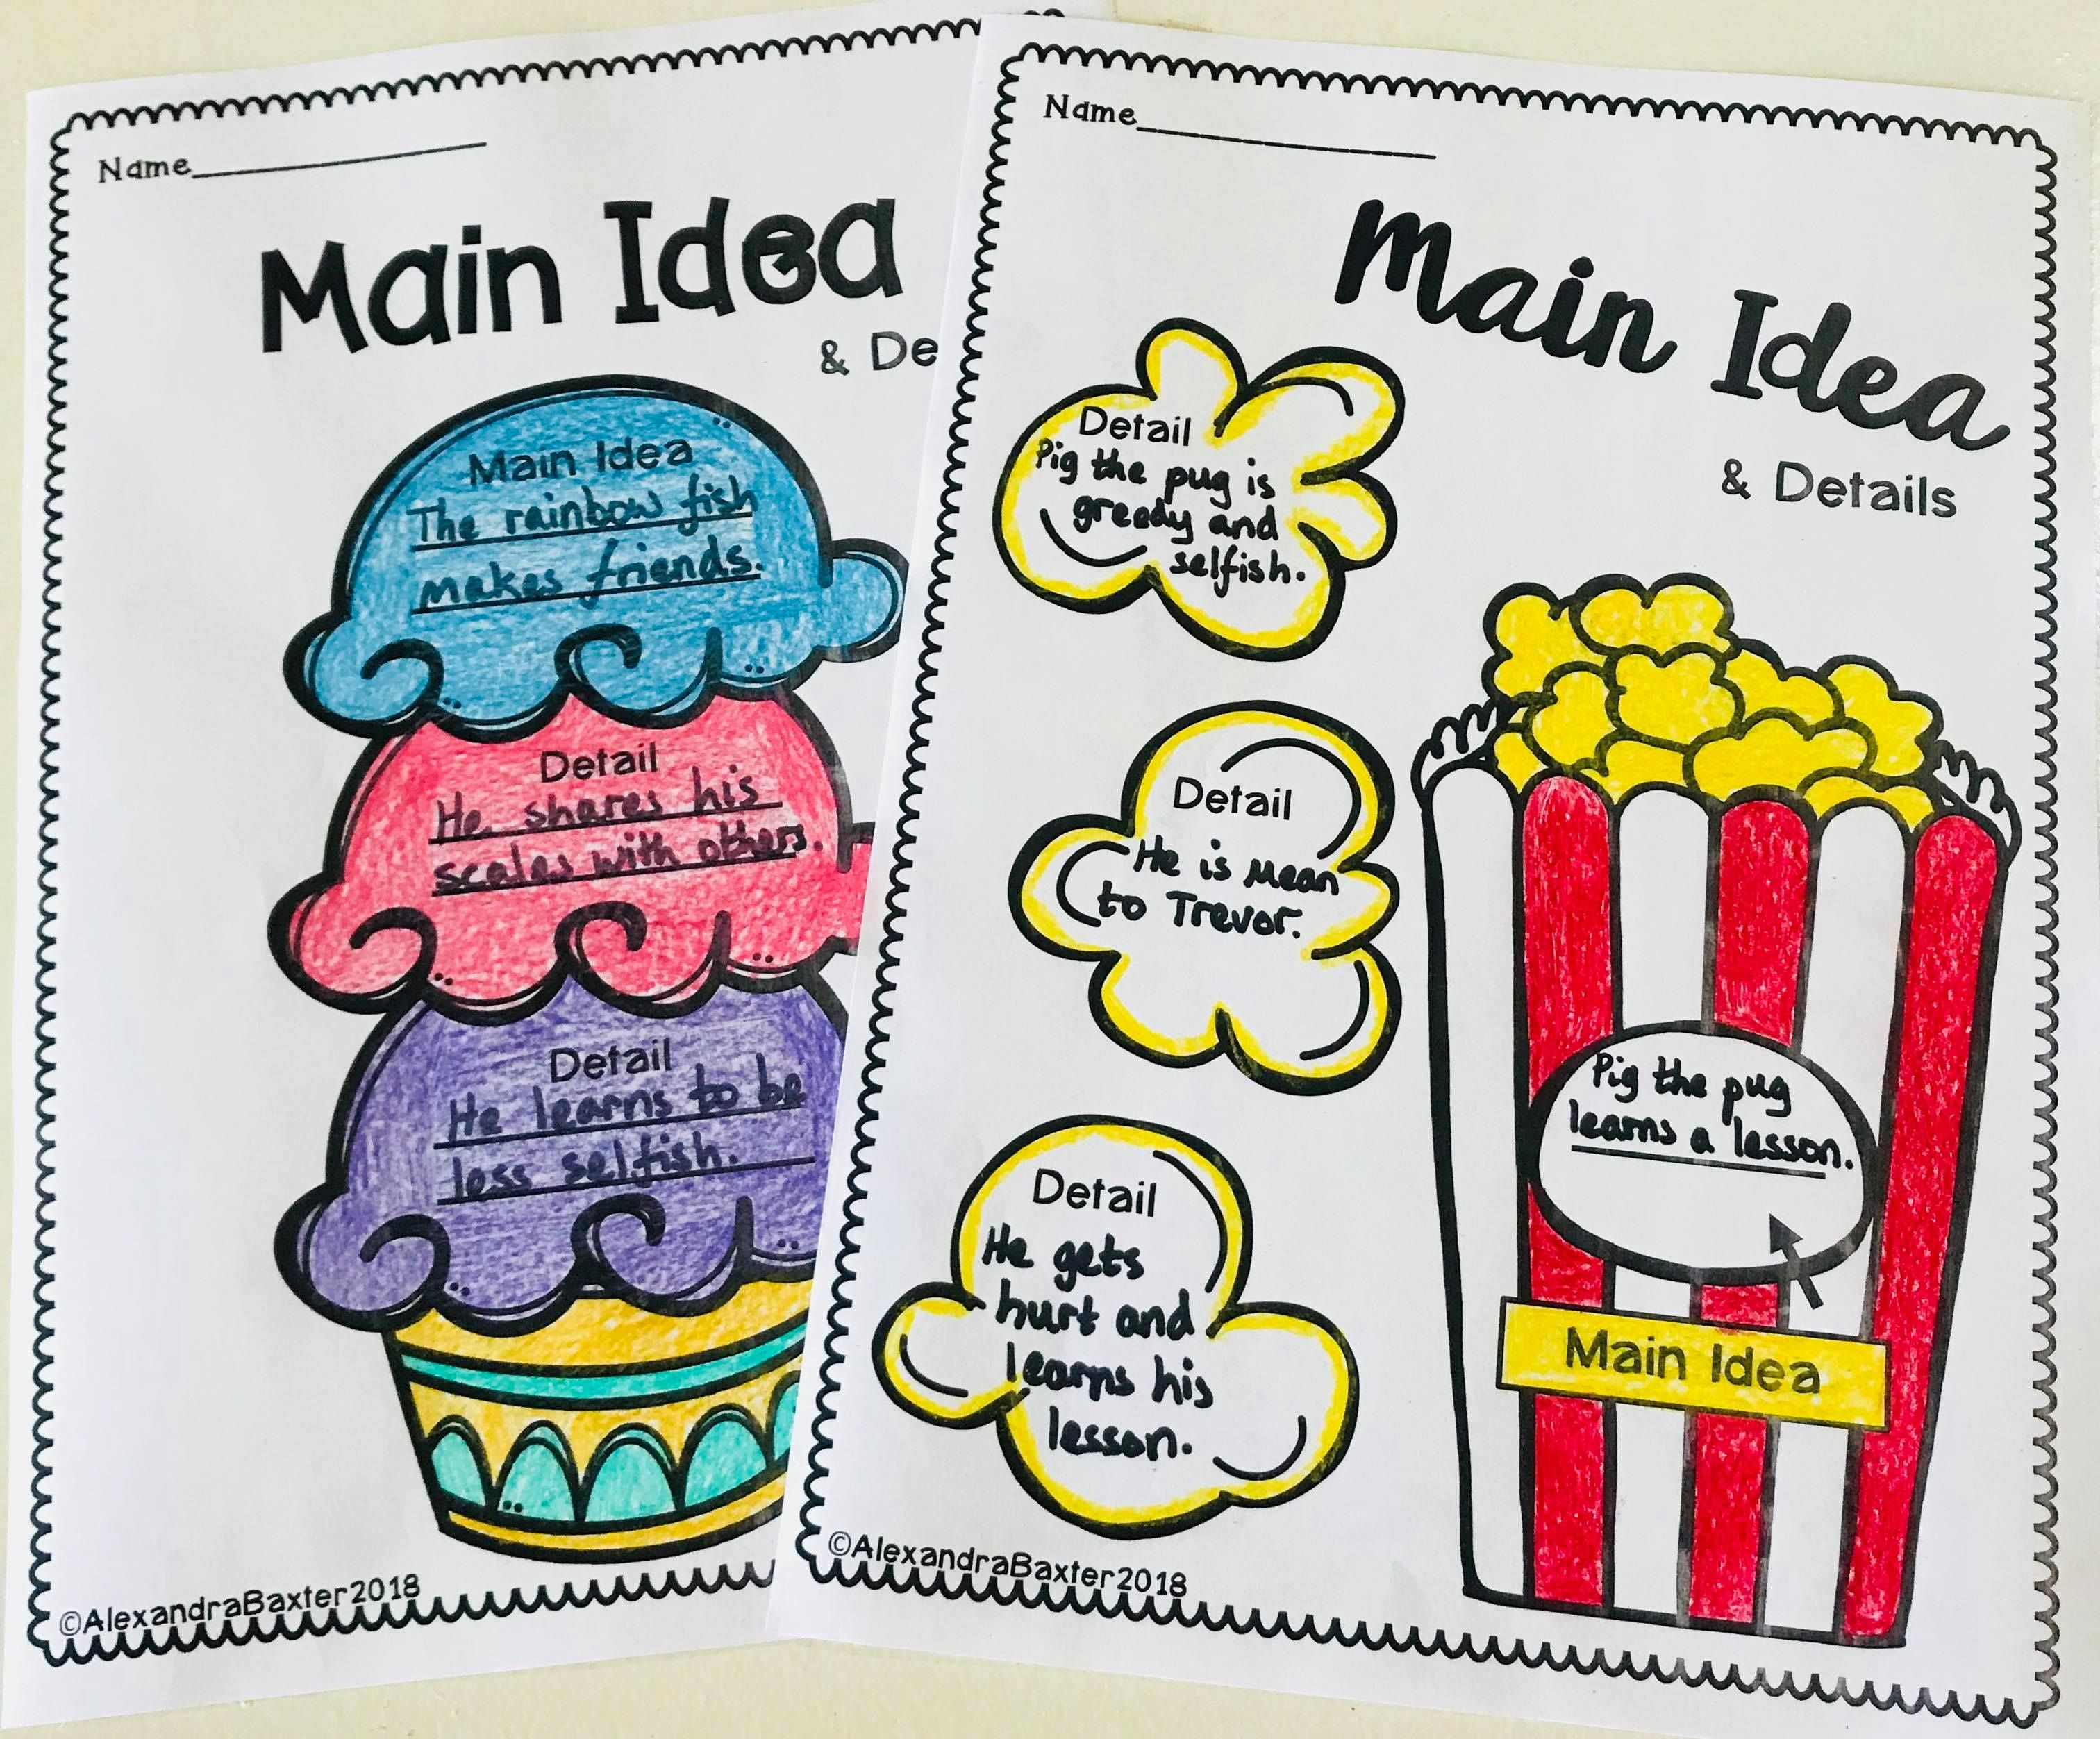 Main Idea Graphic Organizers And Reading Response Worksheets Reading Response Worksheets Reading Graphic Organizers Graphic Organizers [ 2504 x 3024 Pixel ]